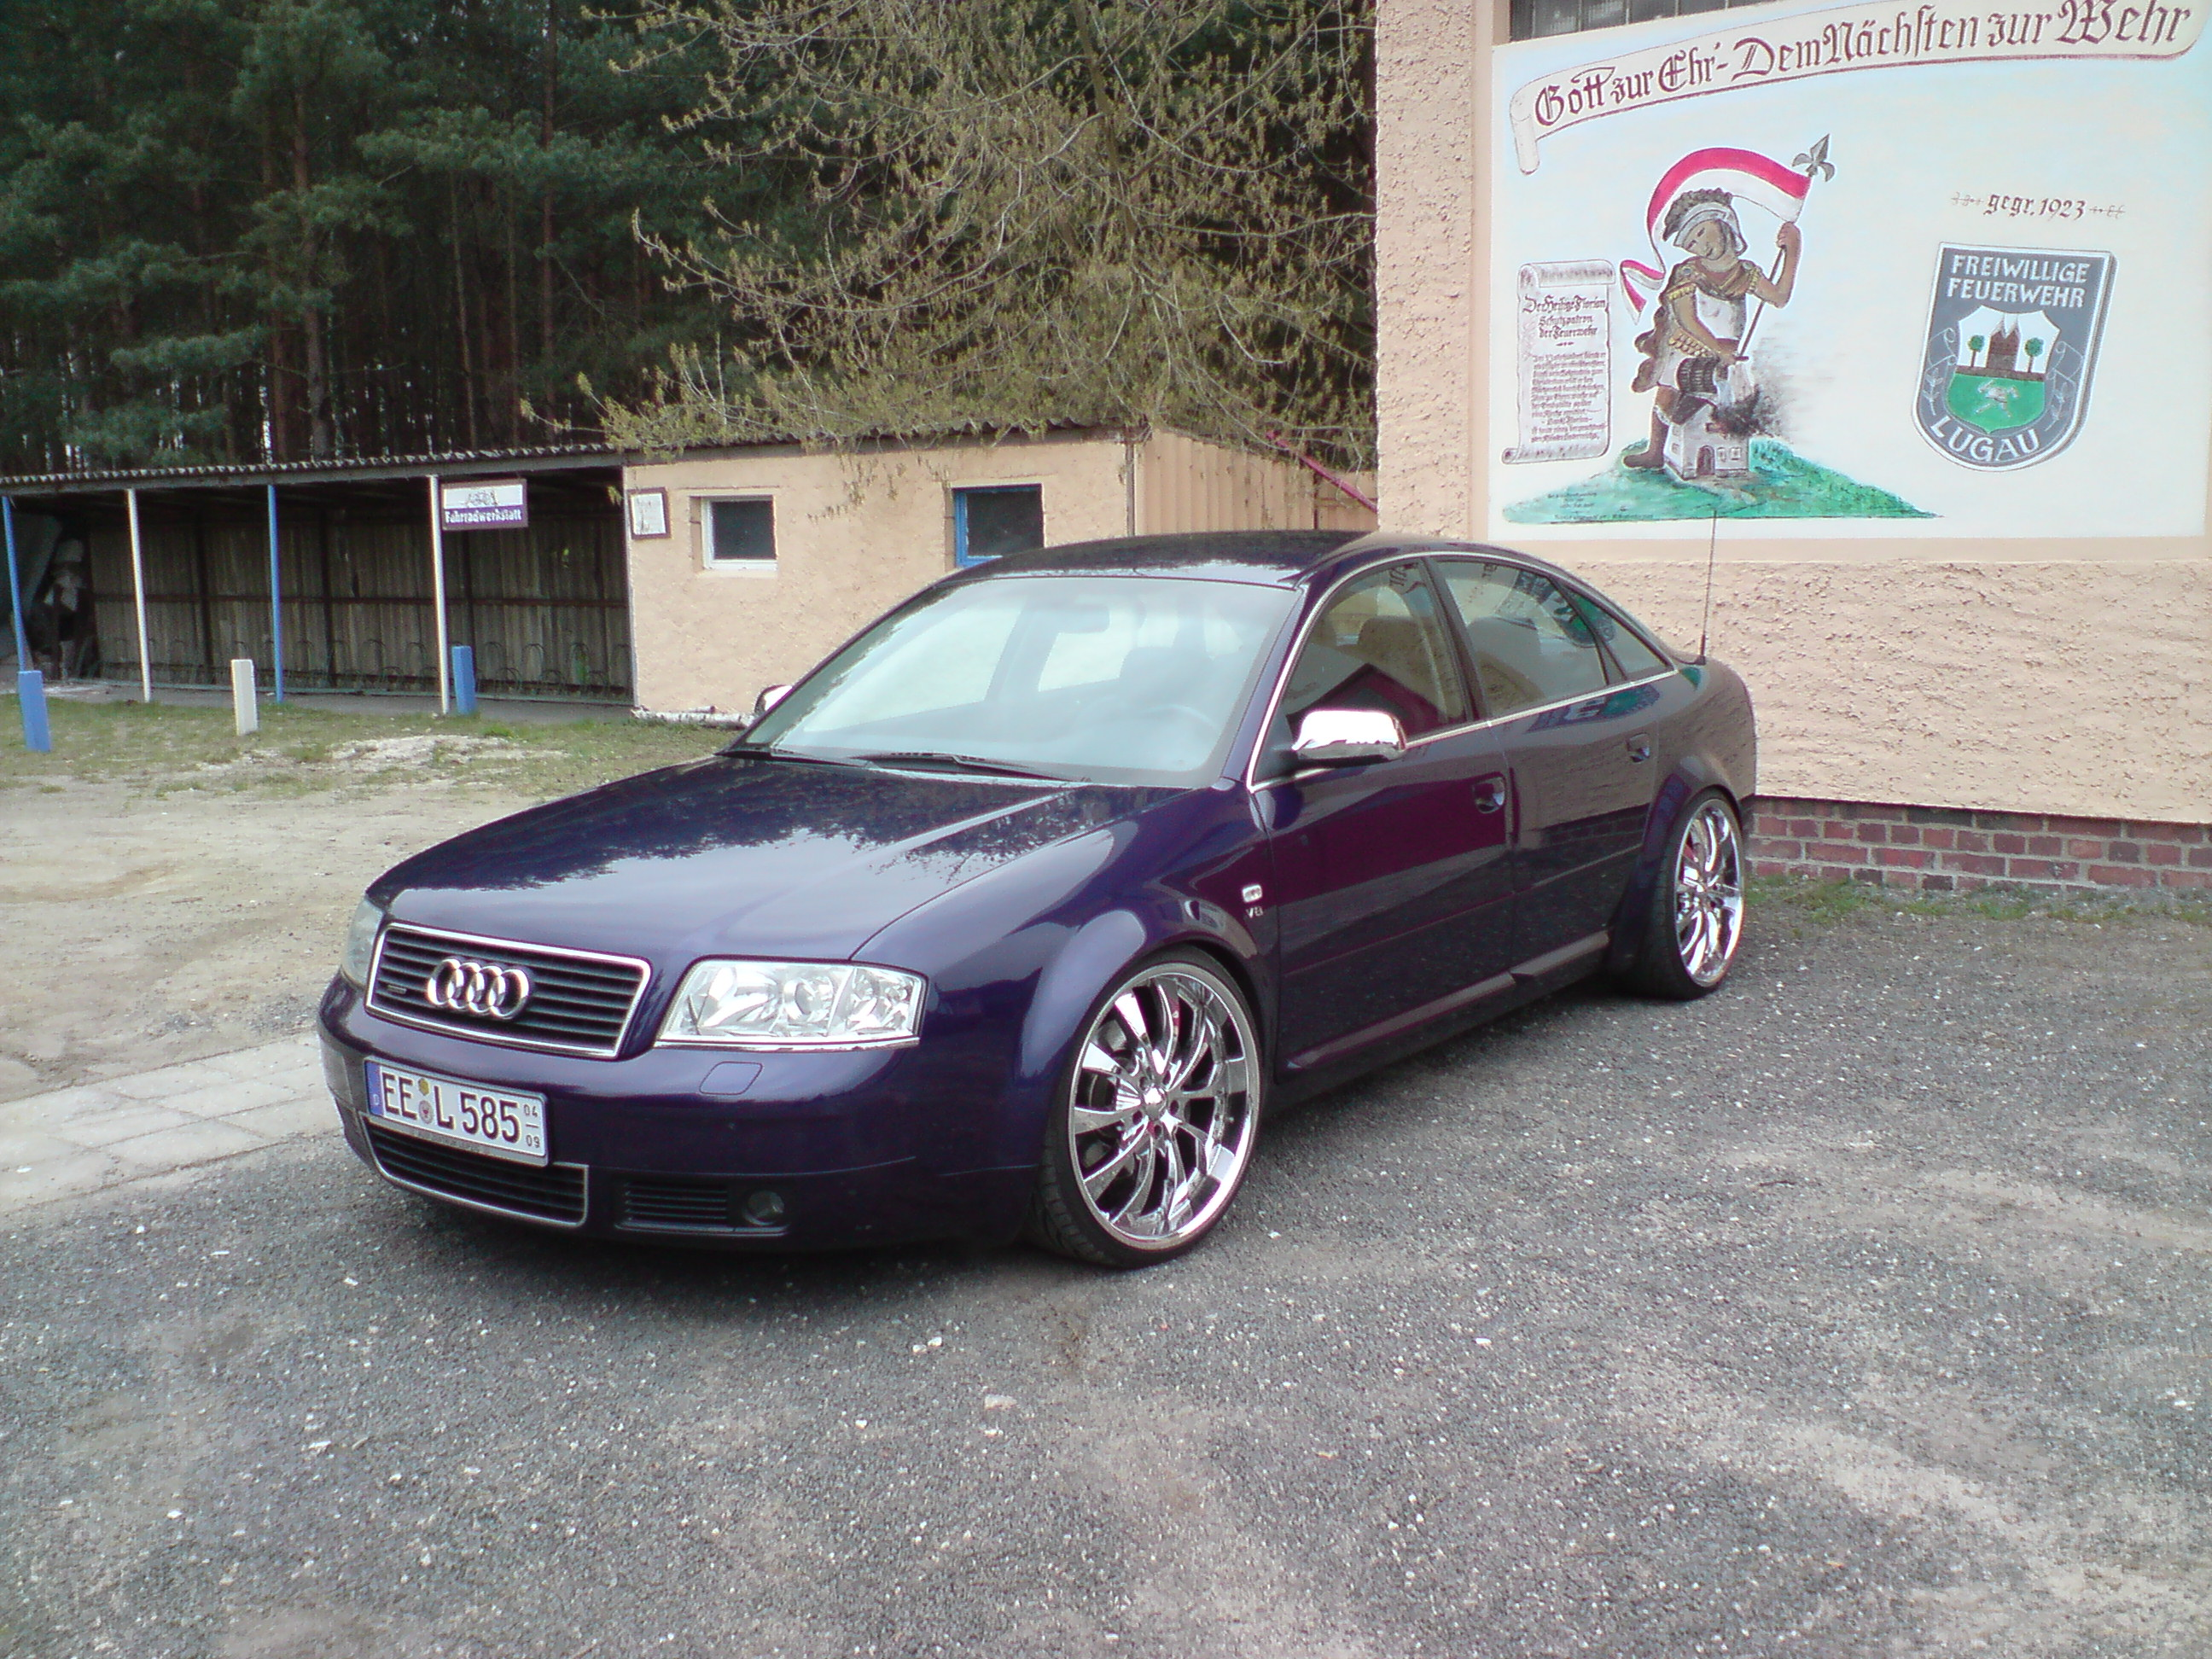 2000 audi a6 4b c5 pictures information and specs. Black Bedroom Furniture Sets. Home Design Ideas